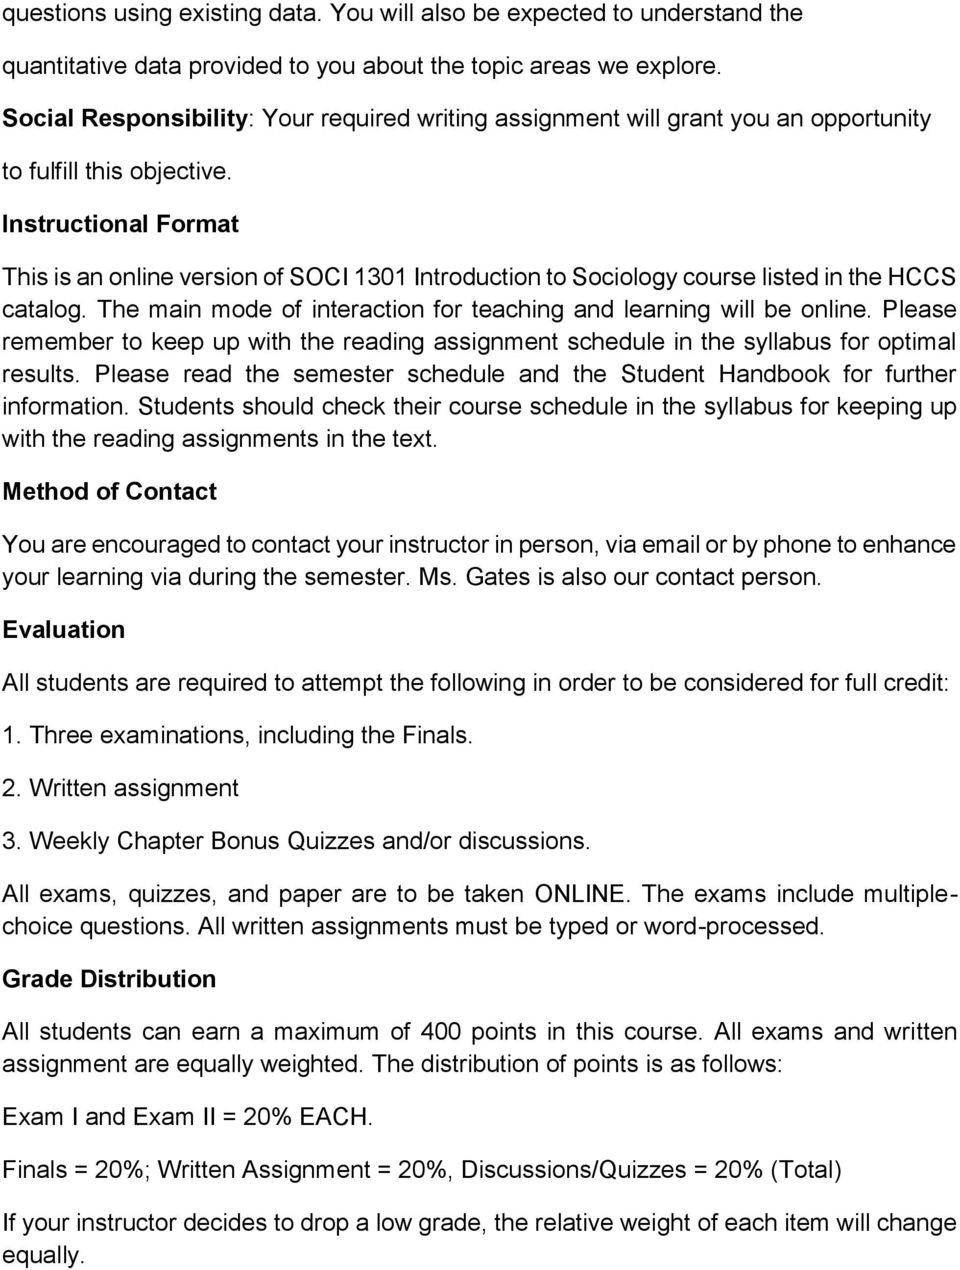 Instructional Format This is an online version of SOCI 1301 Introduction to Sociology course listed in the HCCS catalog. The main mode of interaction for teaching and learning will be online.